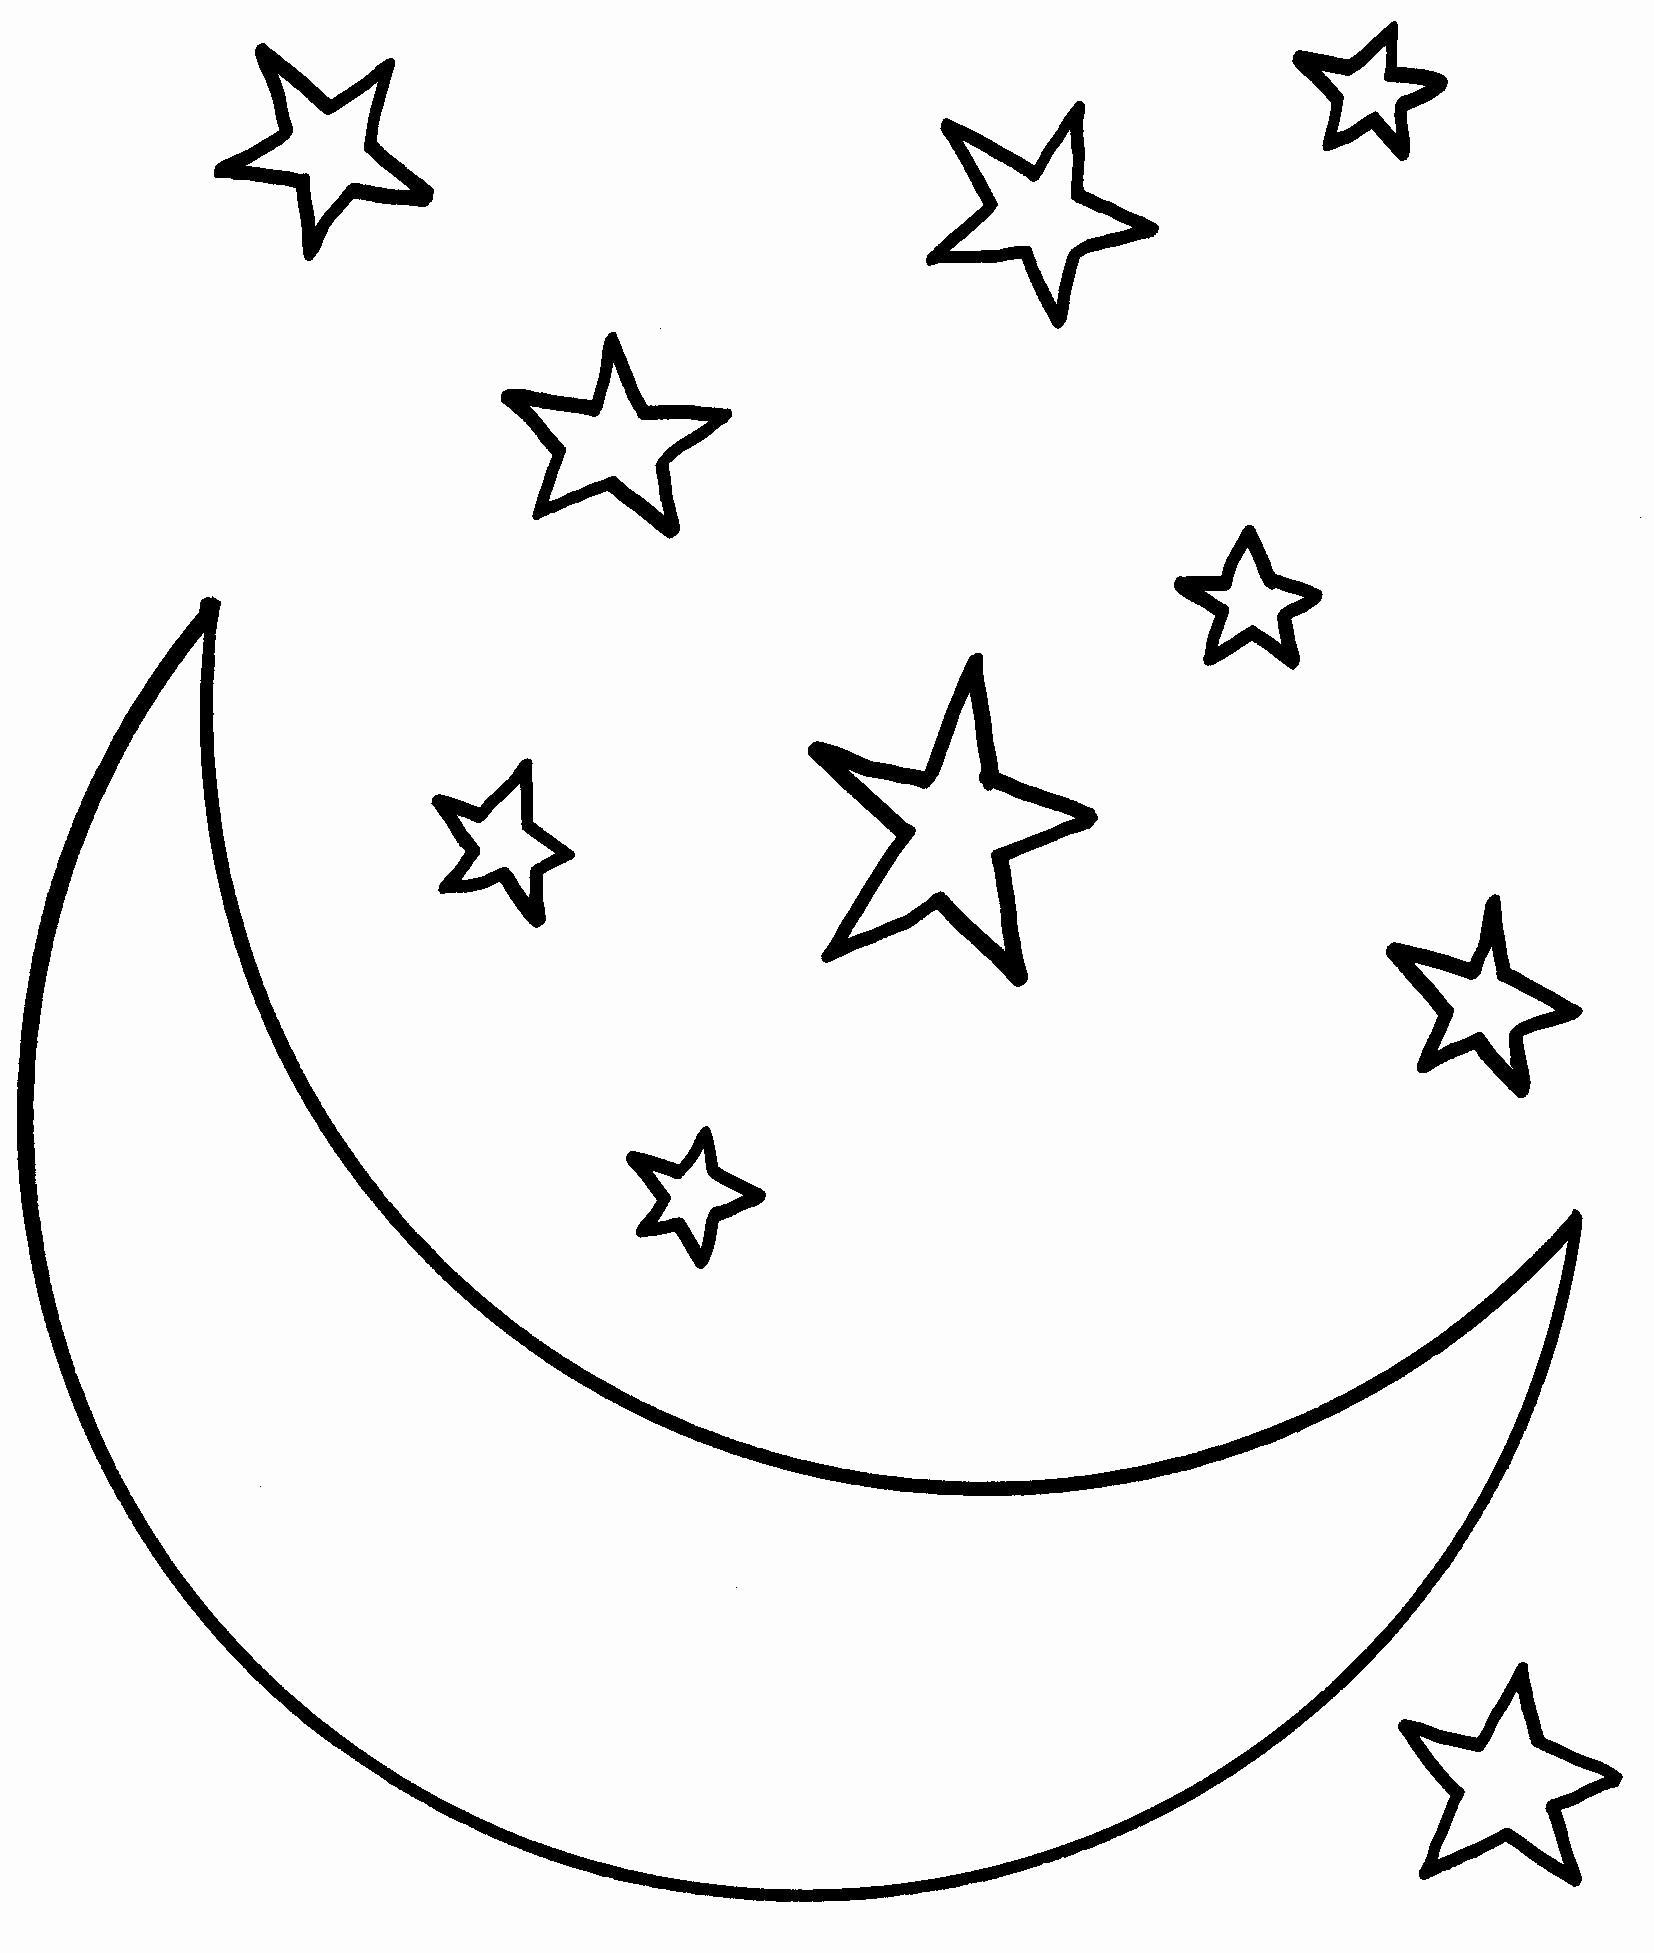 Star Coloring Pages For Adults Moon Coloring Pages Star